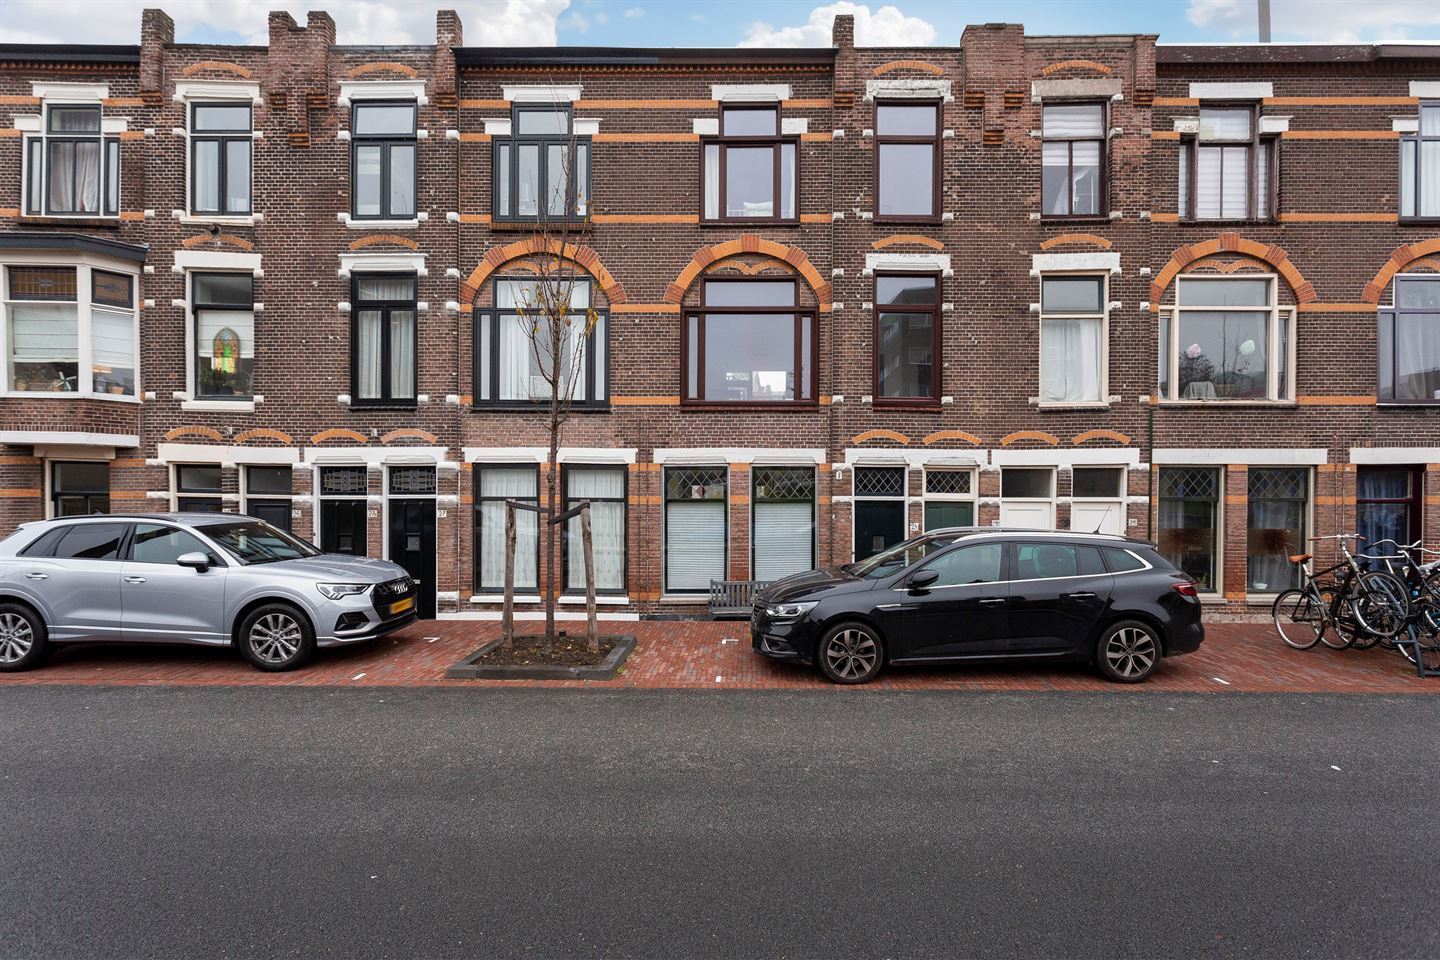 View photo 1 of Maresingel 28 a